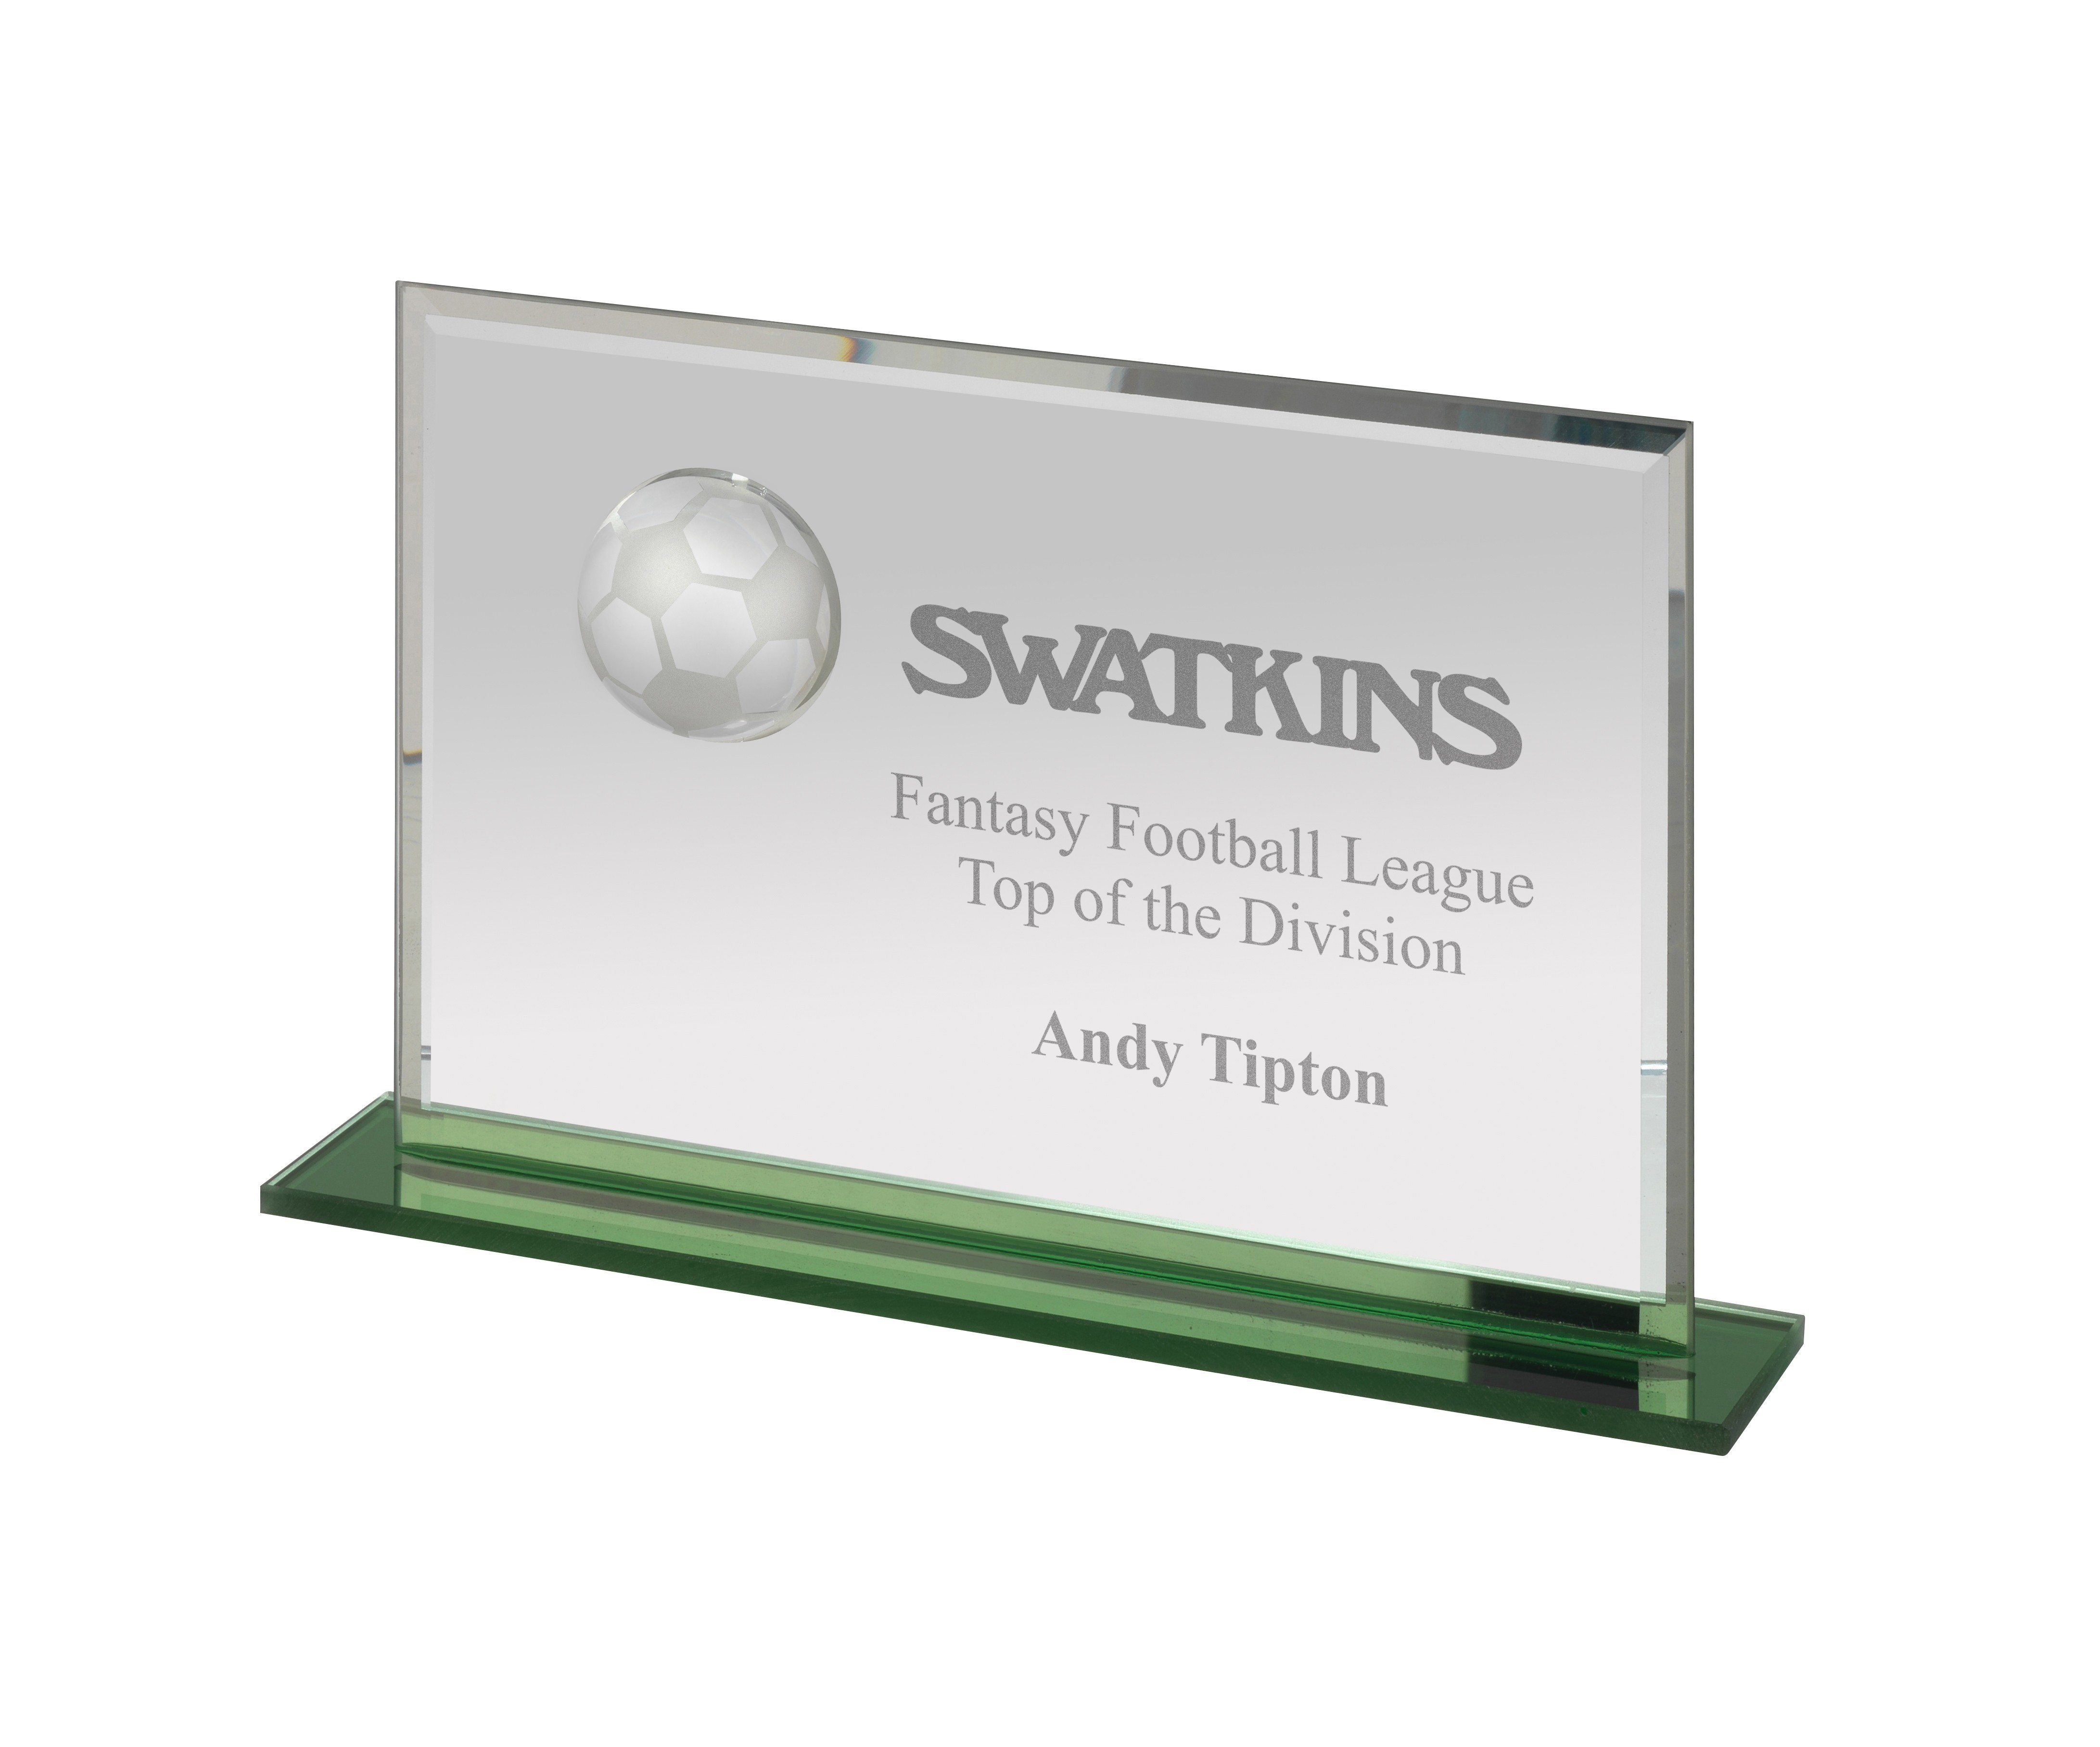 Glass Football Award in Box